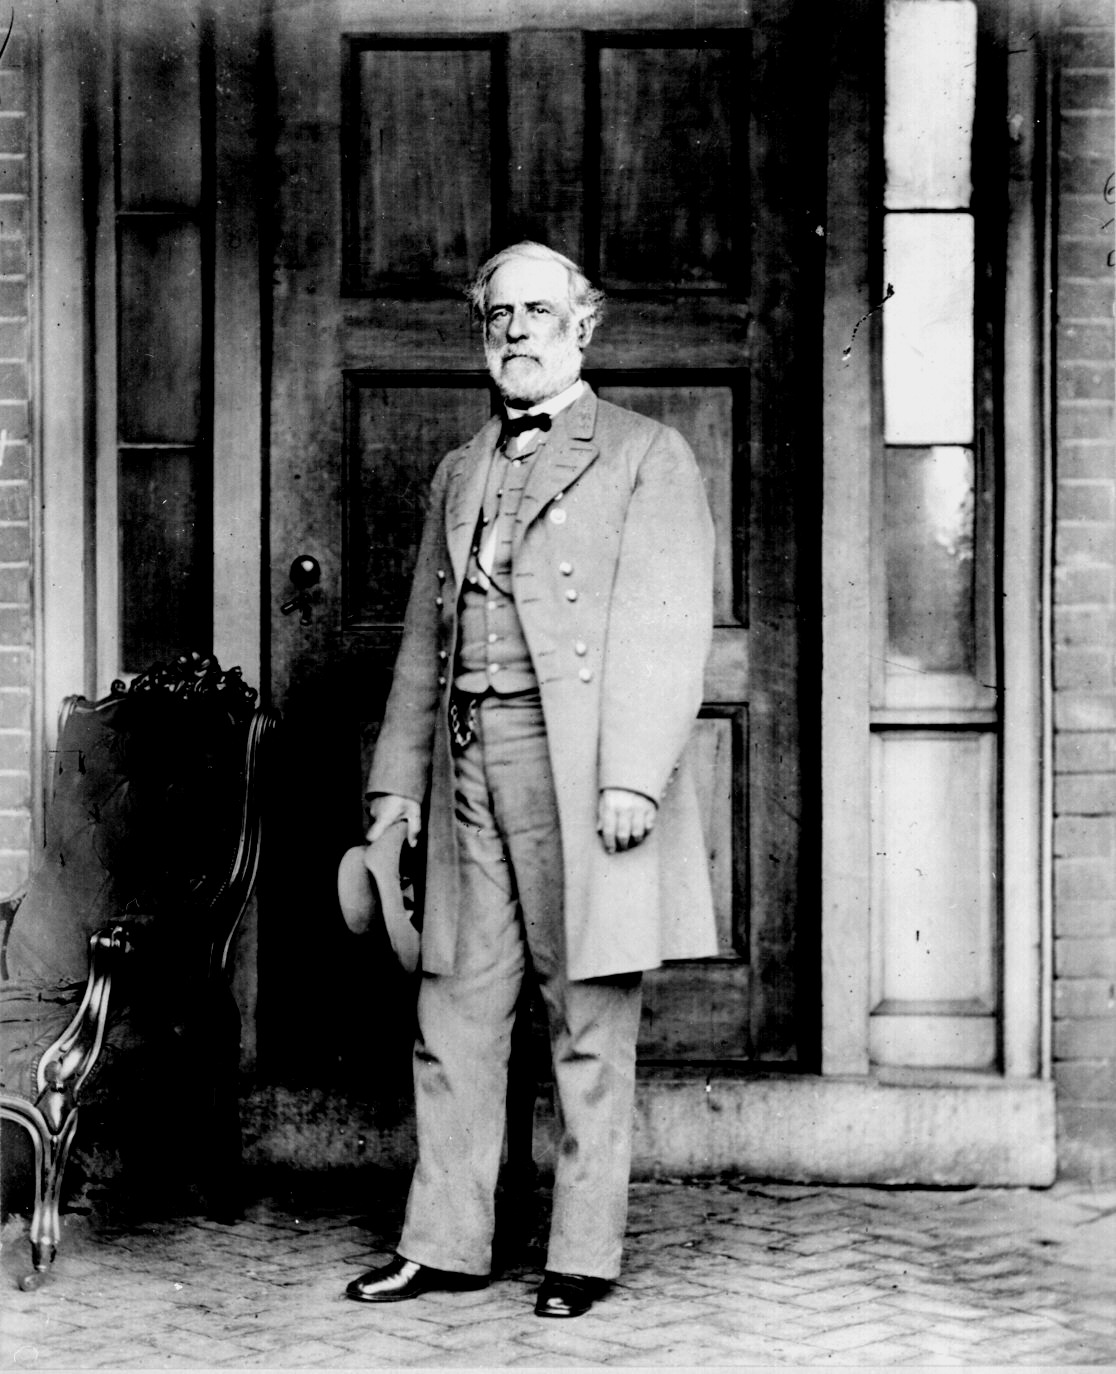 a biography of robert e lee a confederate general Additional biography: taken from the confederate military history, this helps to round out lee's biography lee's views on slavery.